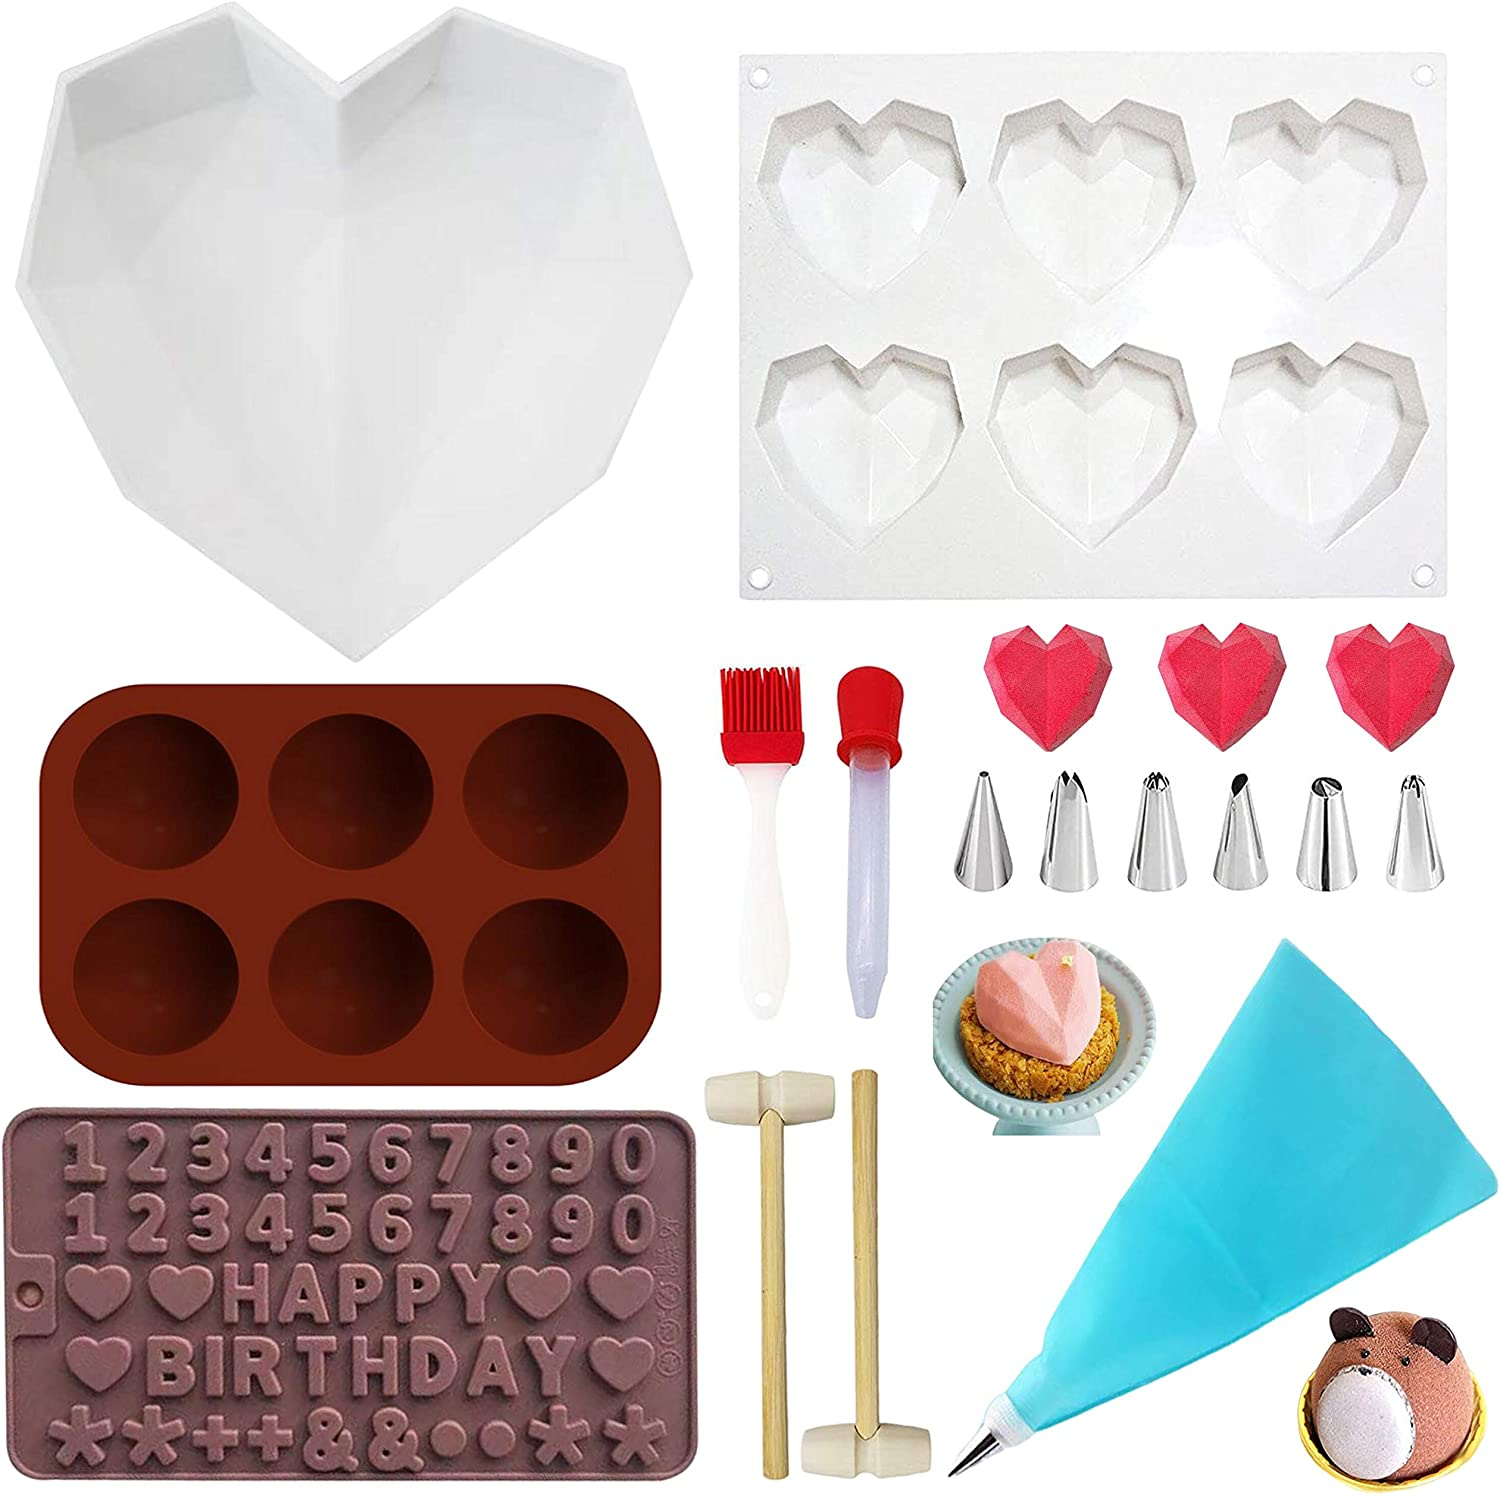 JNYUBND Diamond Heart Love Shape Mousse Cake Chocolate Silicone Mold Trays, Food Grade & BPA Free Not Sticky Mould, for Home Kitchen DIY Baking Tools Gift Set